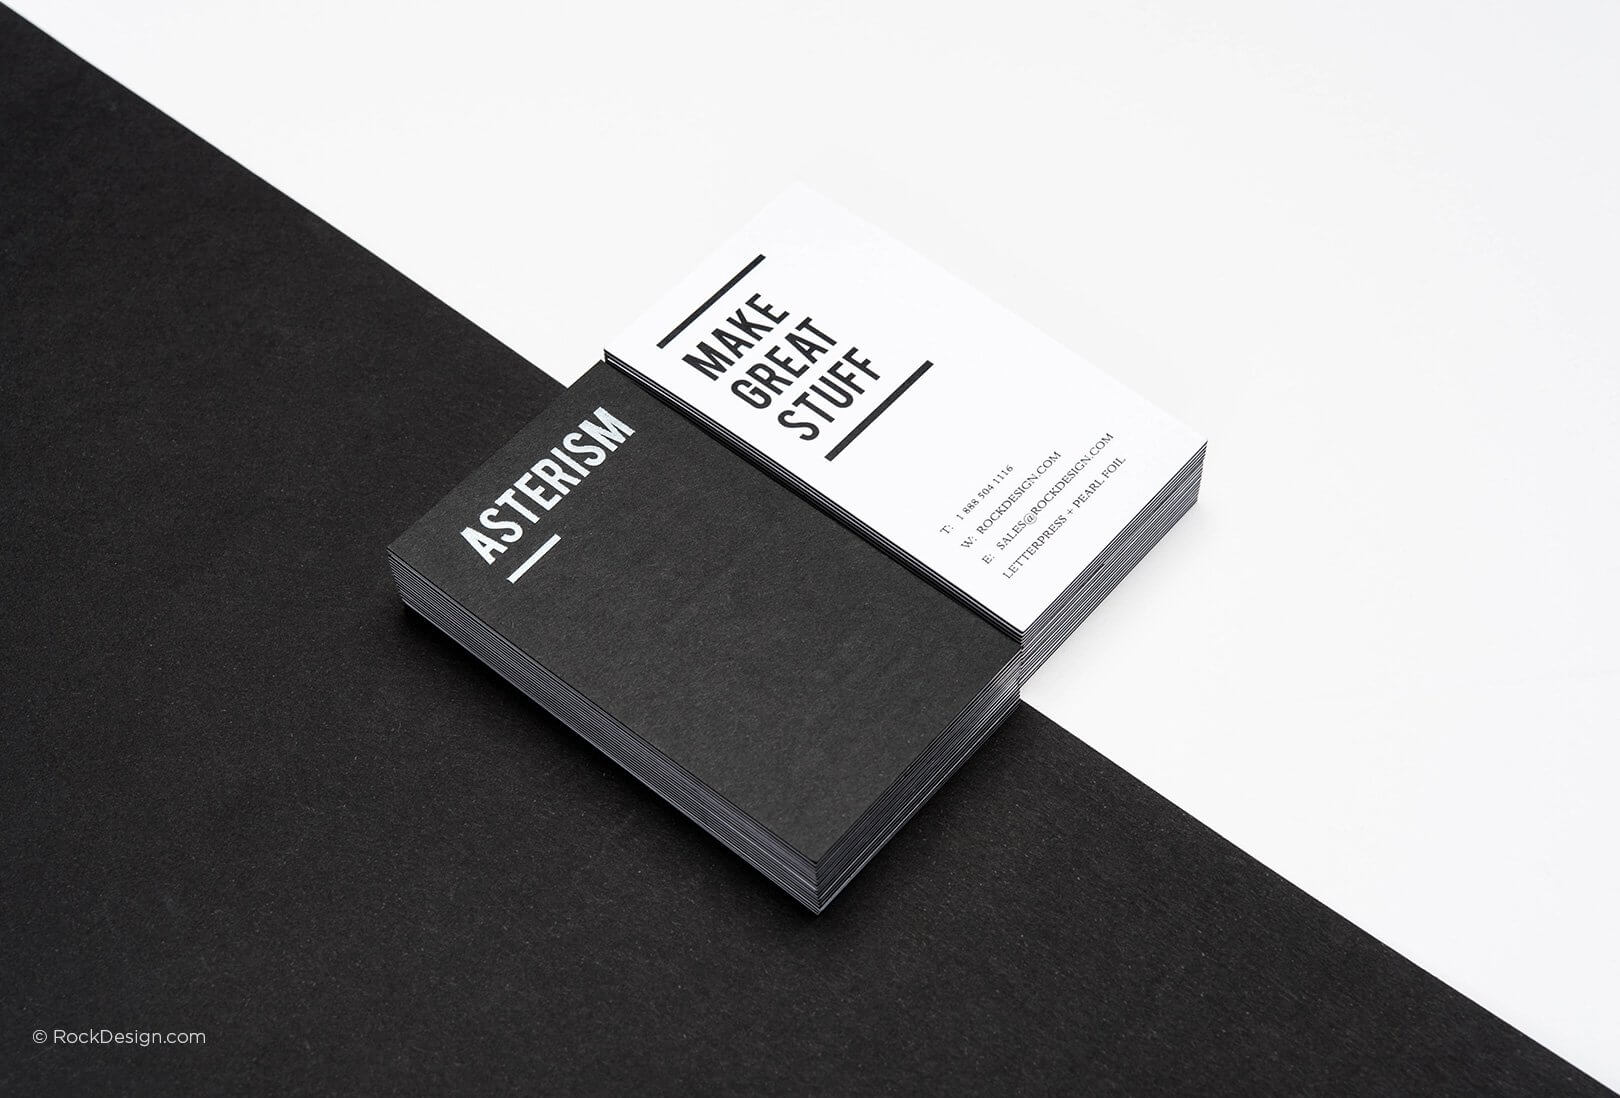 Free Black And White Business Card Templates | Rockdesign Regarding Black And White Business Cards Templates Free